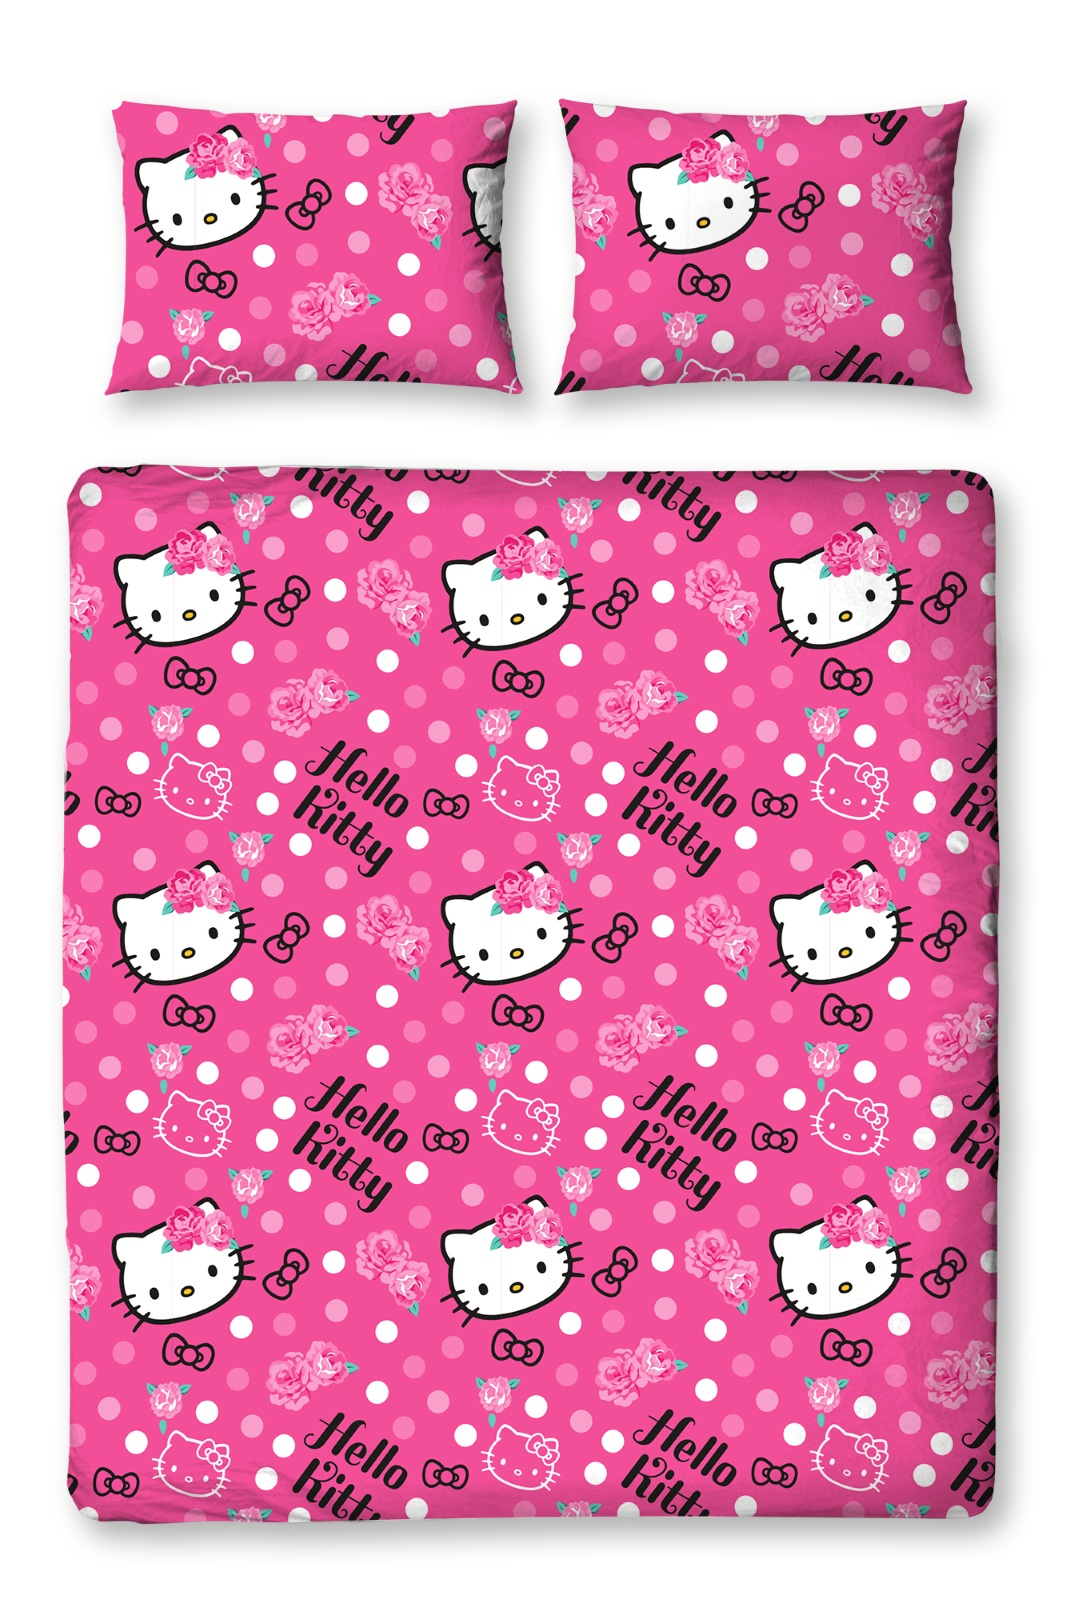 hello kitty sommerwind doppelbett bettbezug kissenbezug kinder bettw sche set ebay. Black Bedroom Furniture Sets. Home Design Ideas